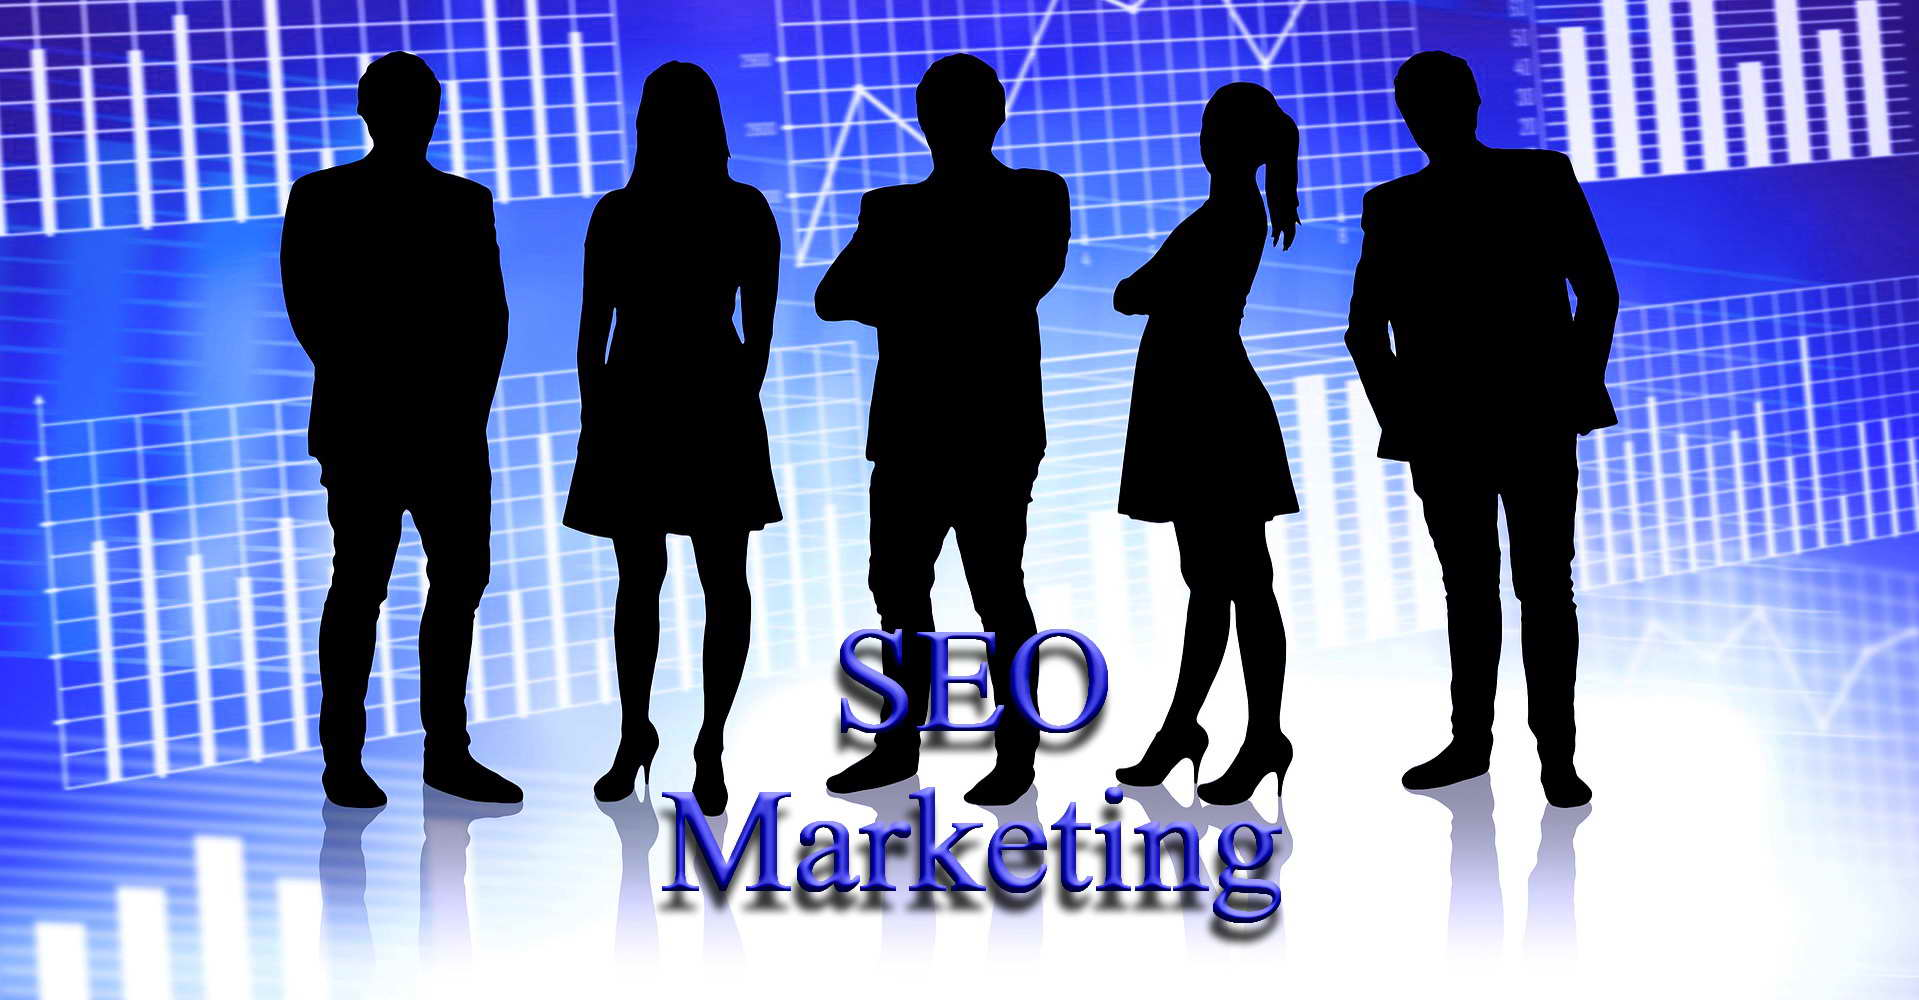 Affordable Online Marketing & SEO